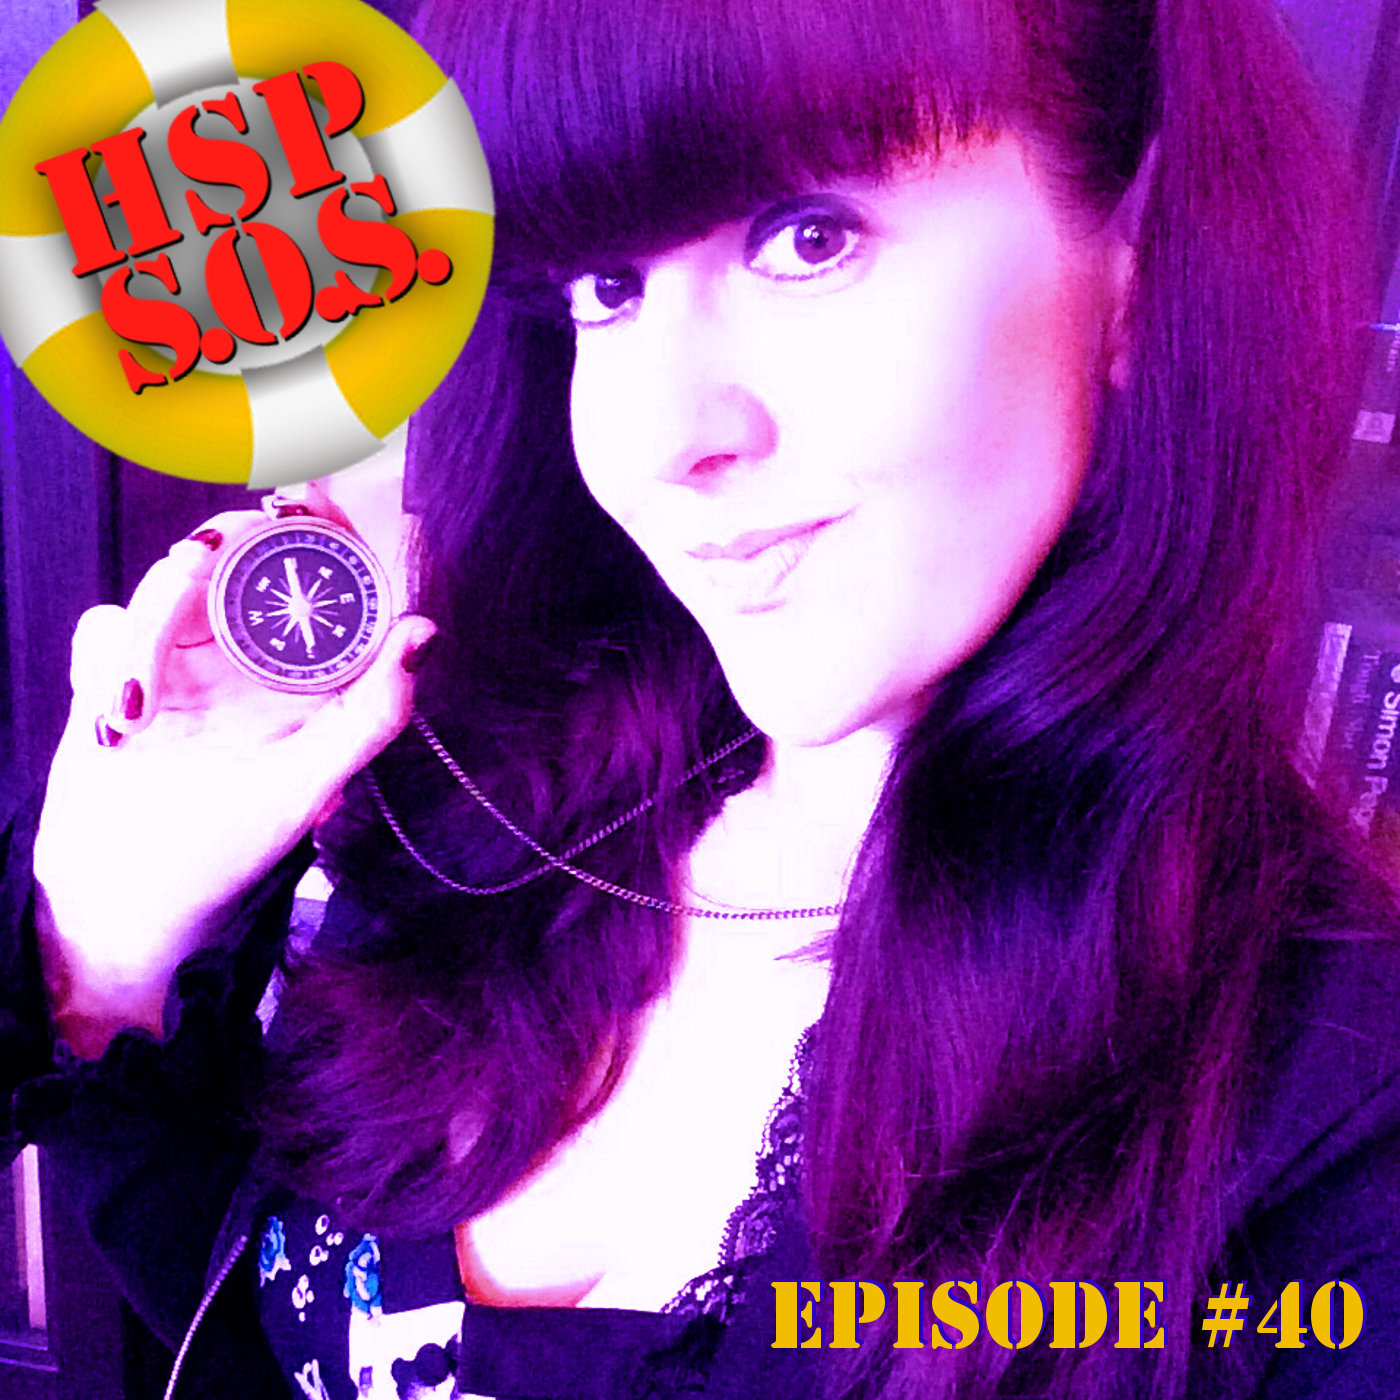 HSP SOS #40 - Very Highly Sensitive Problems